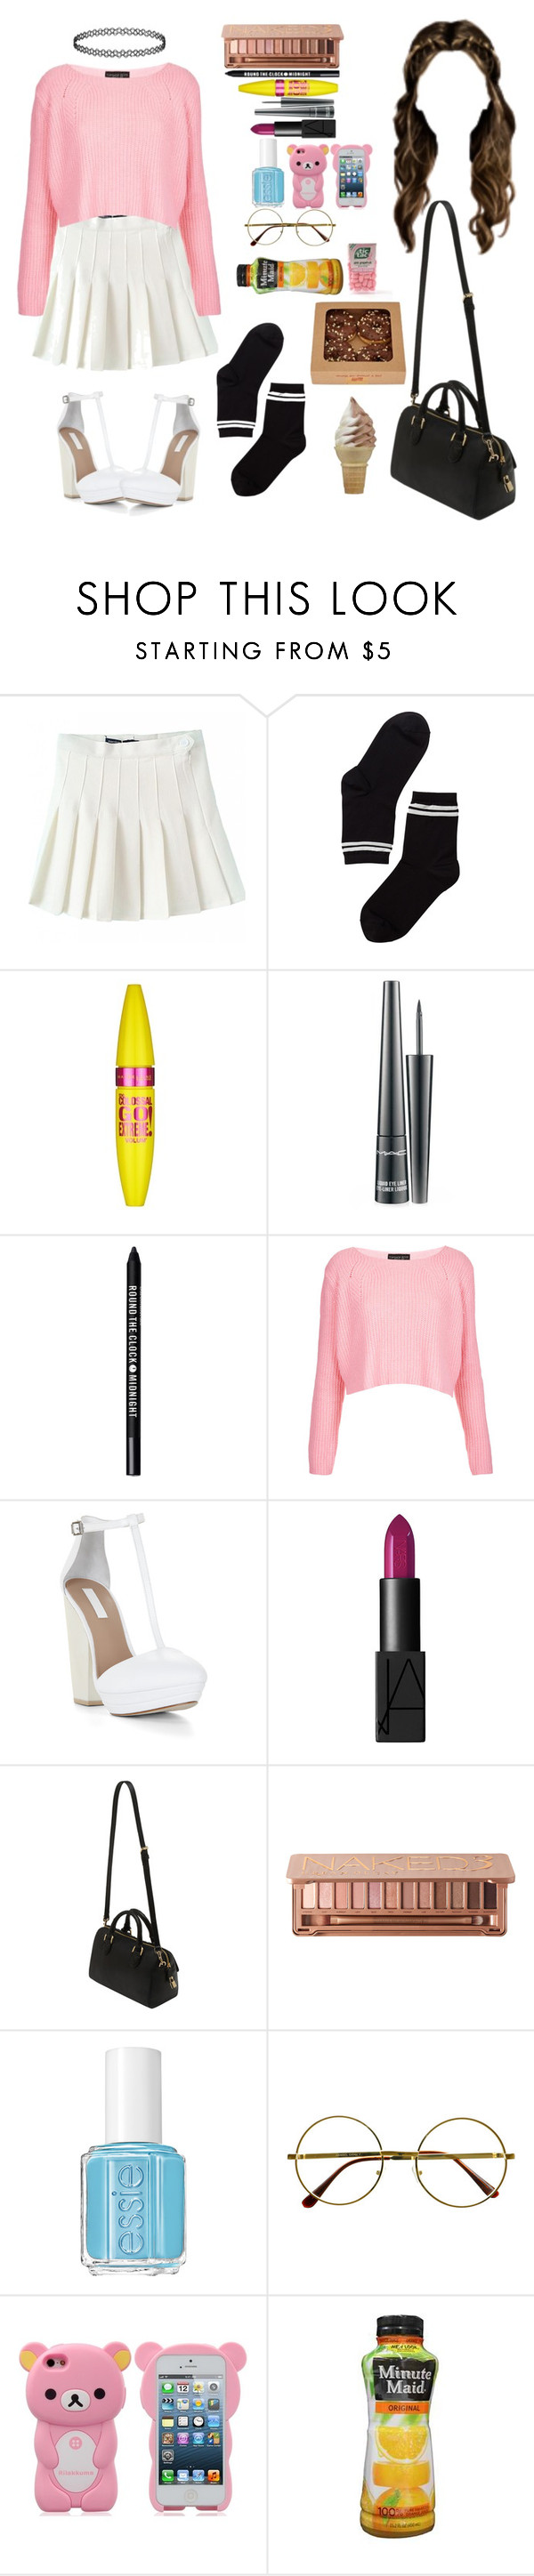 """Untitled #538"" by manuuhwang ❤ liked on Polyvore featuring Monki, Maybelline, MAC Cosmetics, Bare Escentuals, Topshop, BCBGMAXAZRIA, NARS Cosmetics, Mulberry, Urban Decay and Essie"